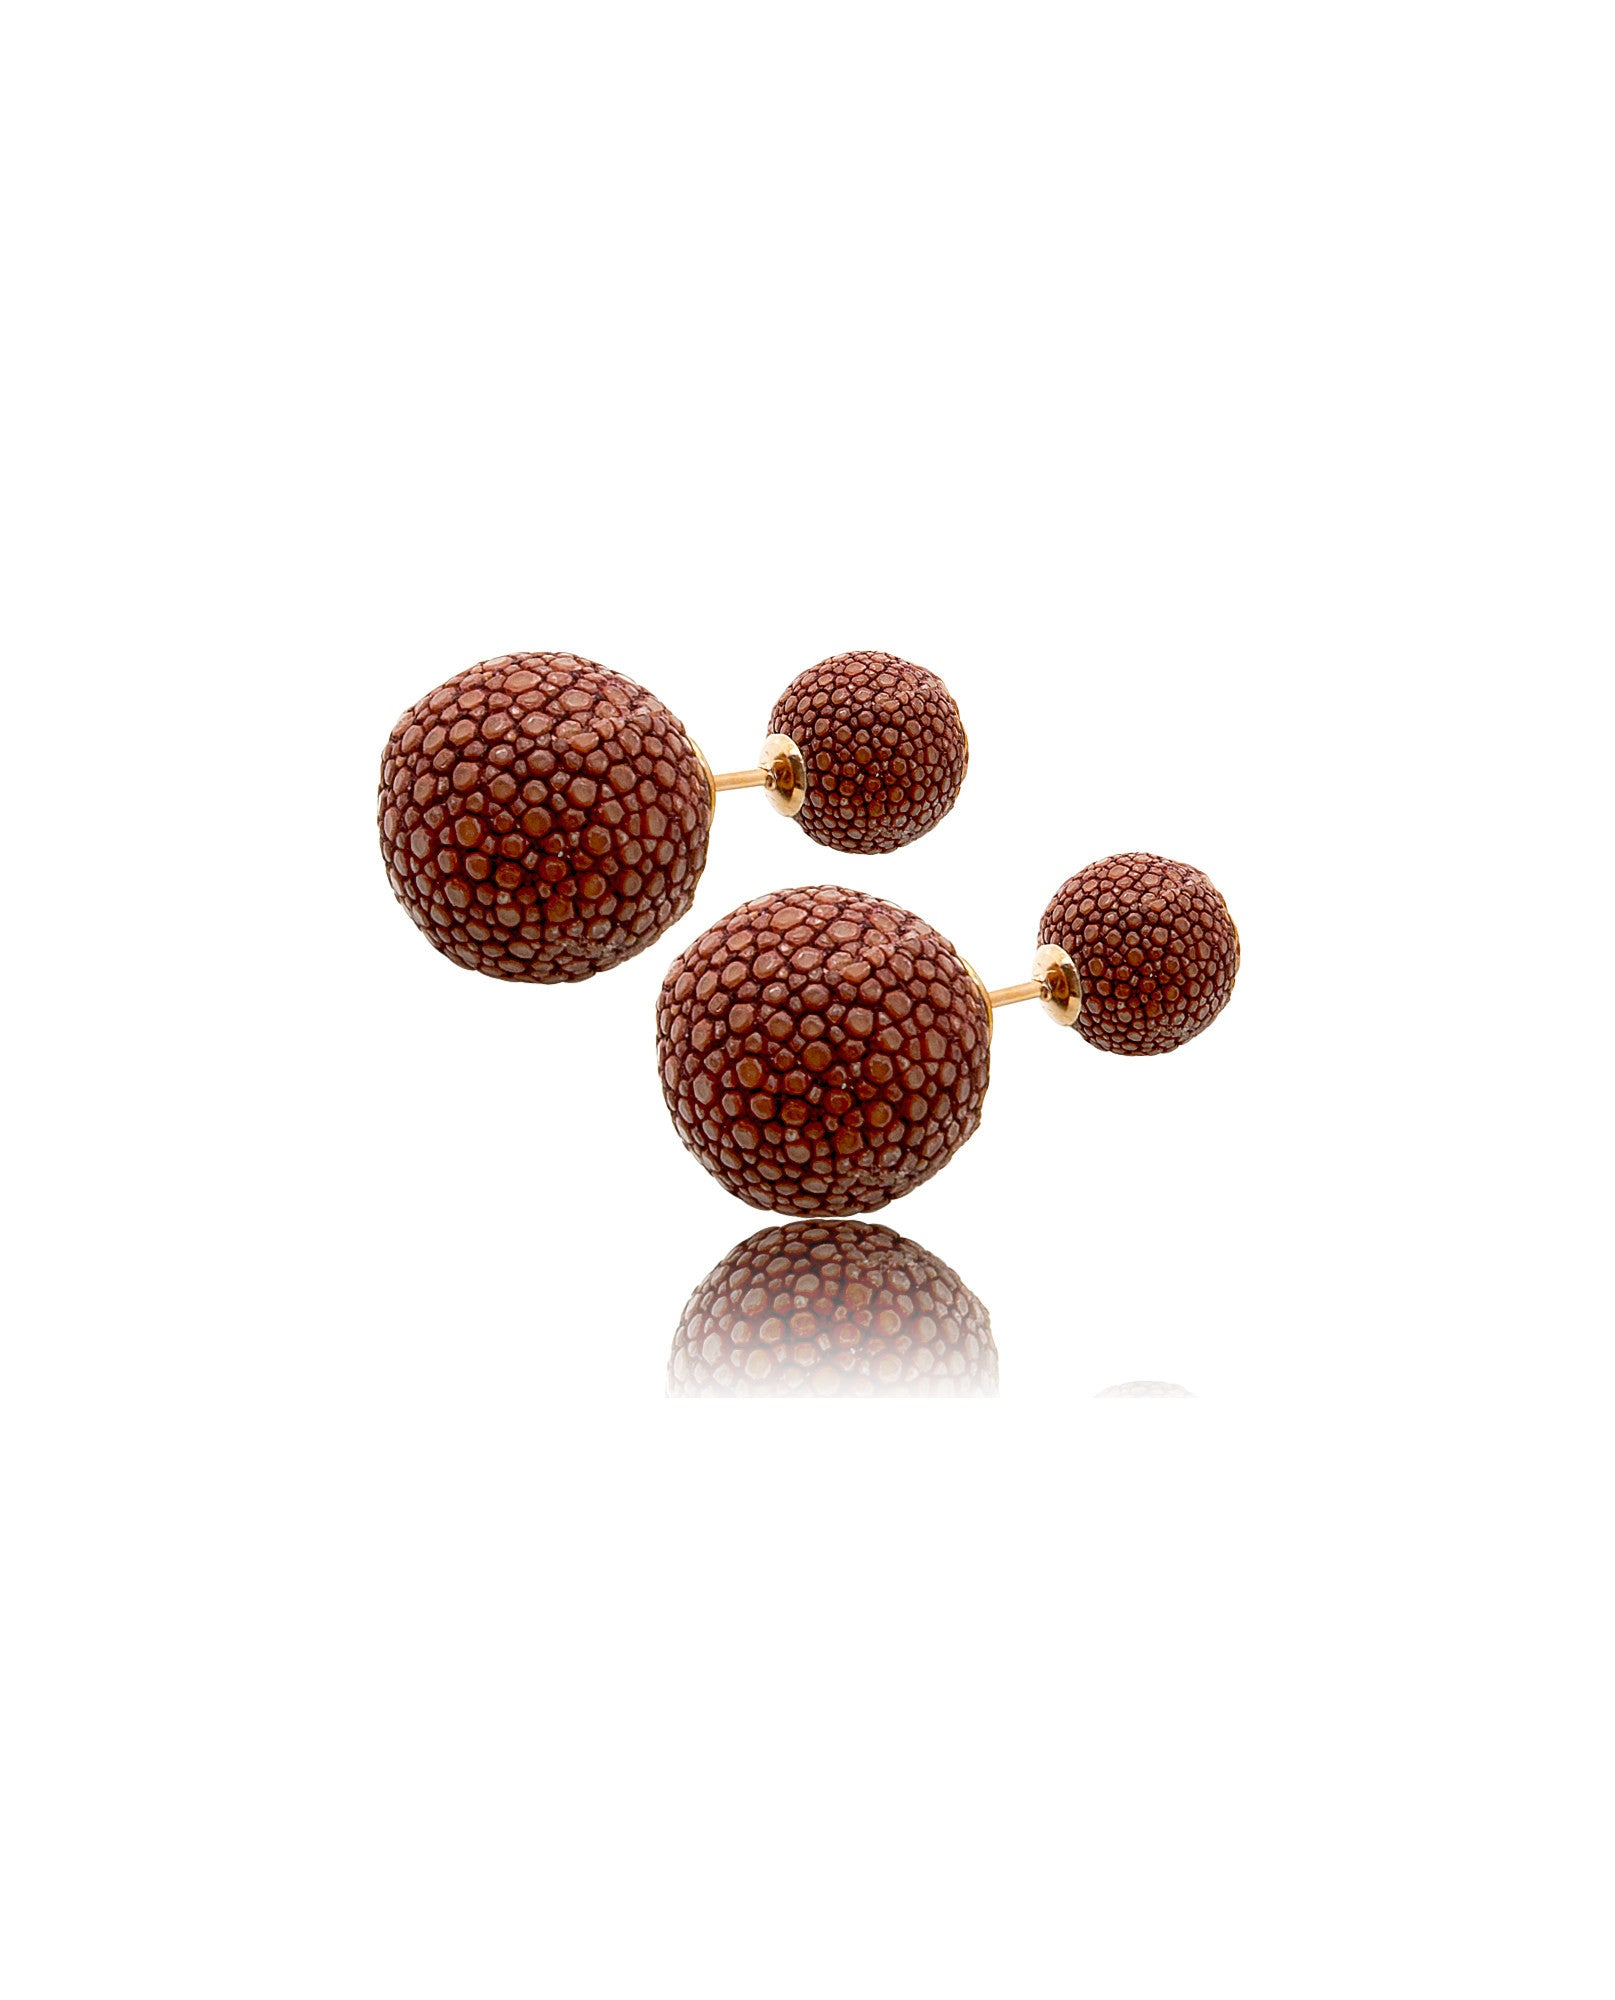 Elan Bijoux - Vieux Rose Double Stud Earrings - The Velvet Closet